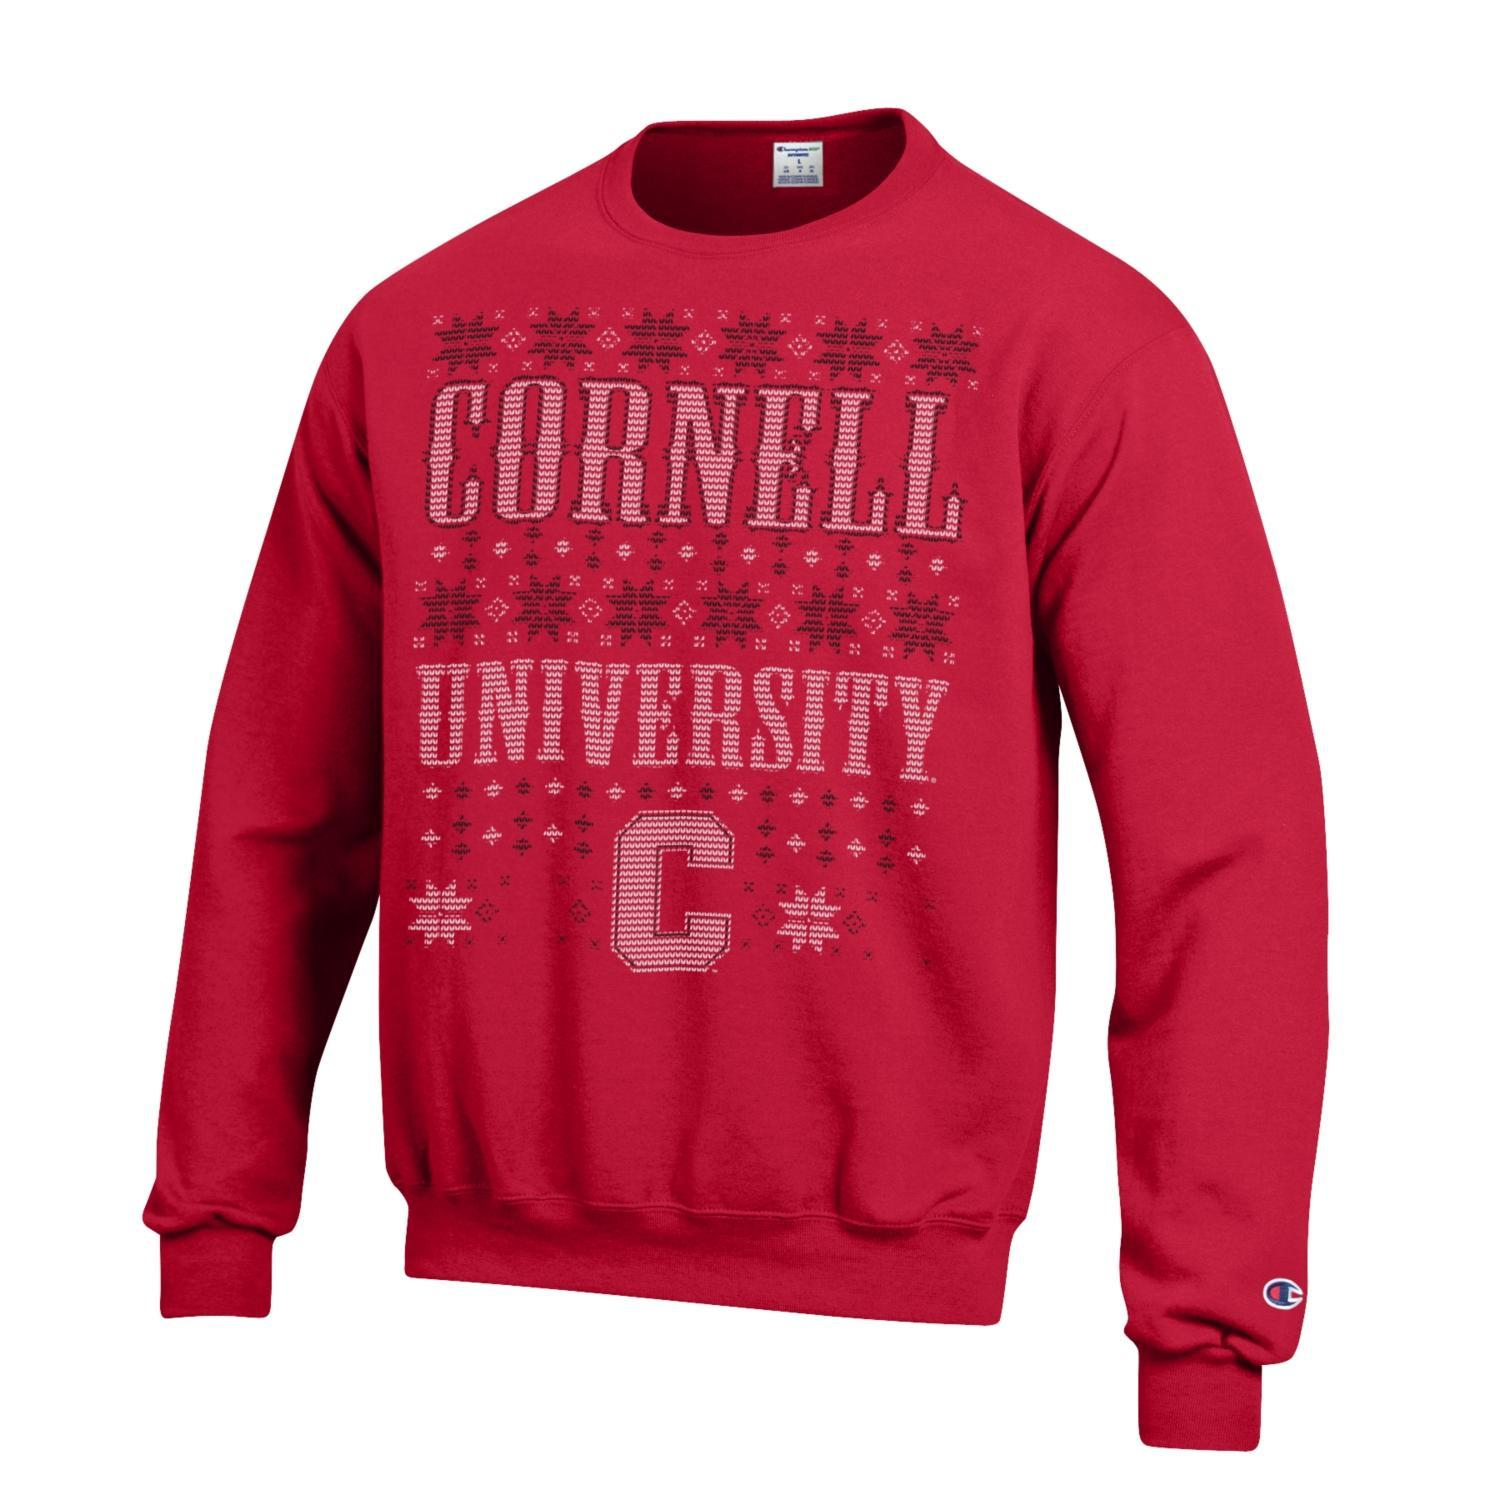 a02352a49590e Champion Cornell Red Ugly Sweatshirt.  14.99  29.99. Quick View